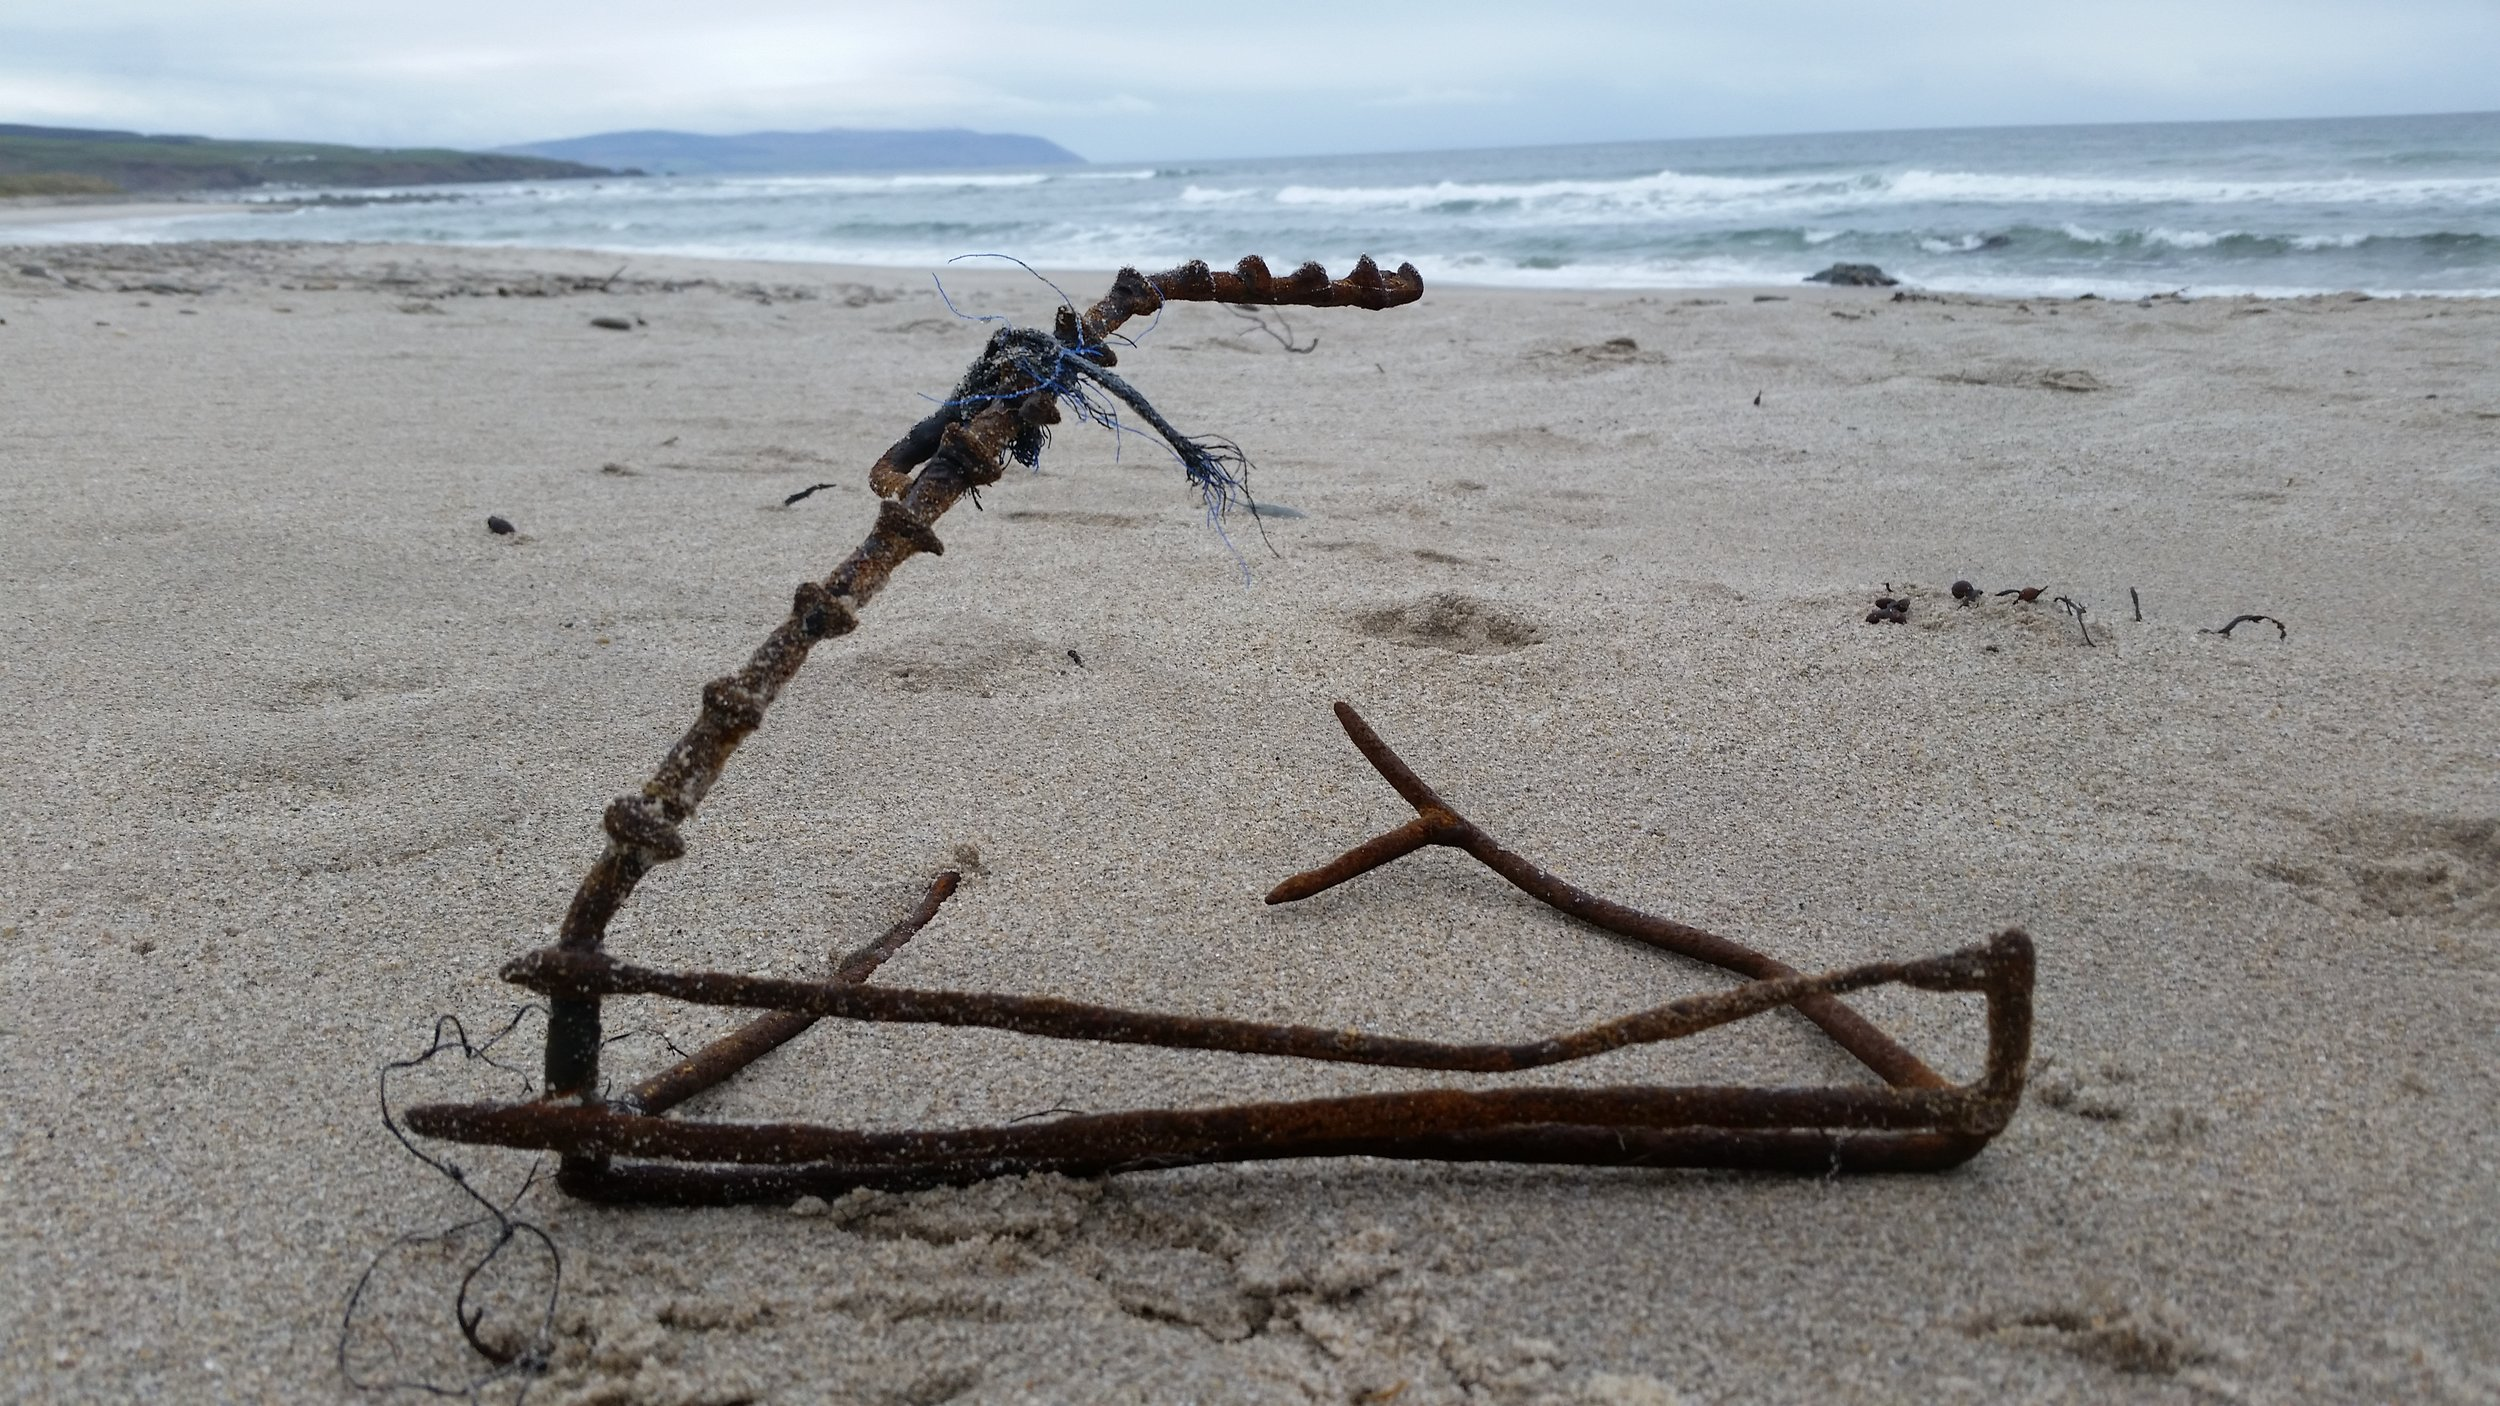 This nasty piece of kit we found half buried, it looks more like a bear trap than a lobster trap!